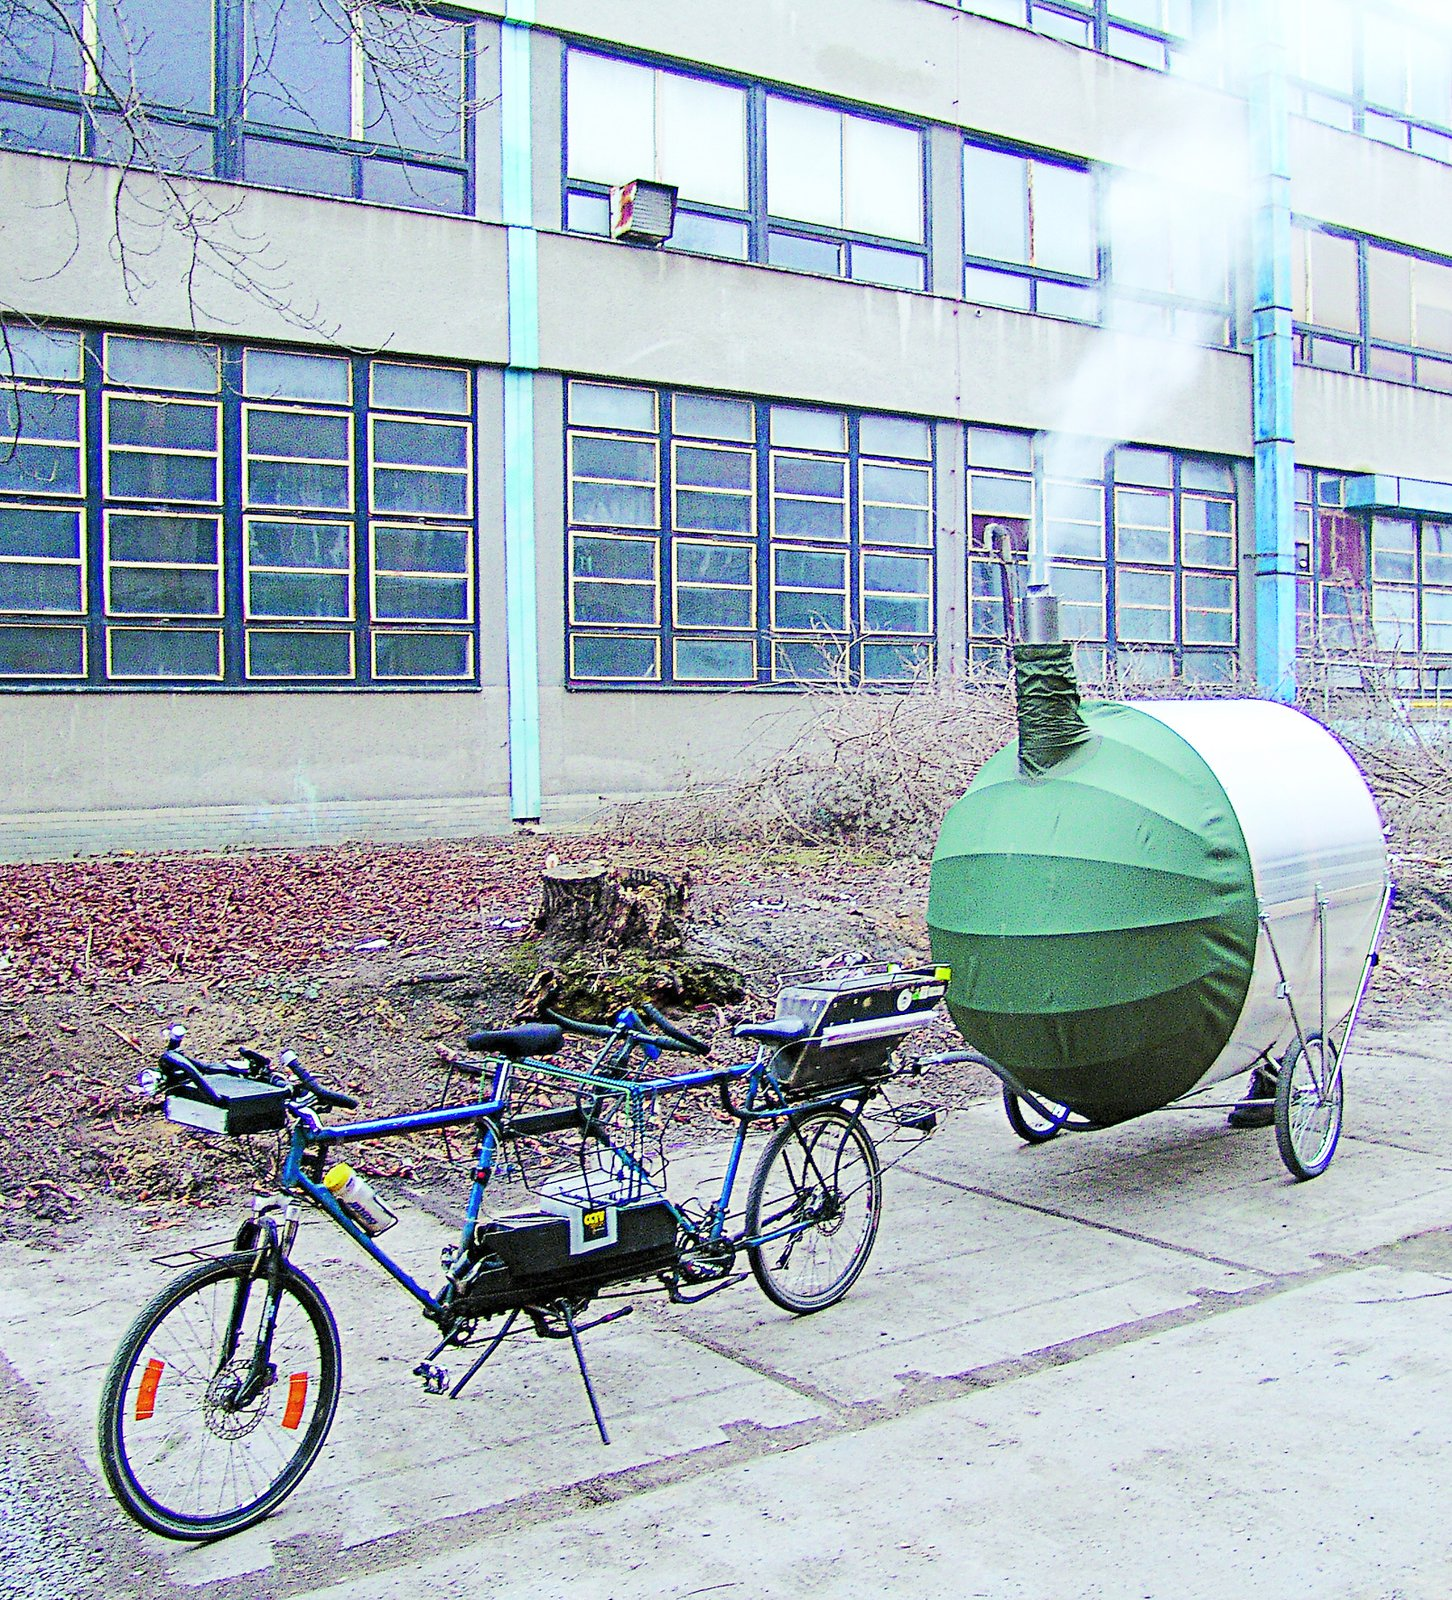 Bicycle Sauna, H3T Architects, 2011  Equipped with the necessary hookups to tow behind a tandem bike, this richshaw-like contraption is a sauna that, amazingly, can fit six. Heat is generated by an internal fireplace and trapped by the polycarbonate hood.